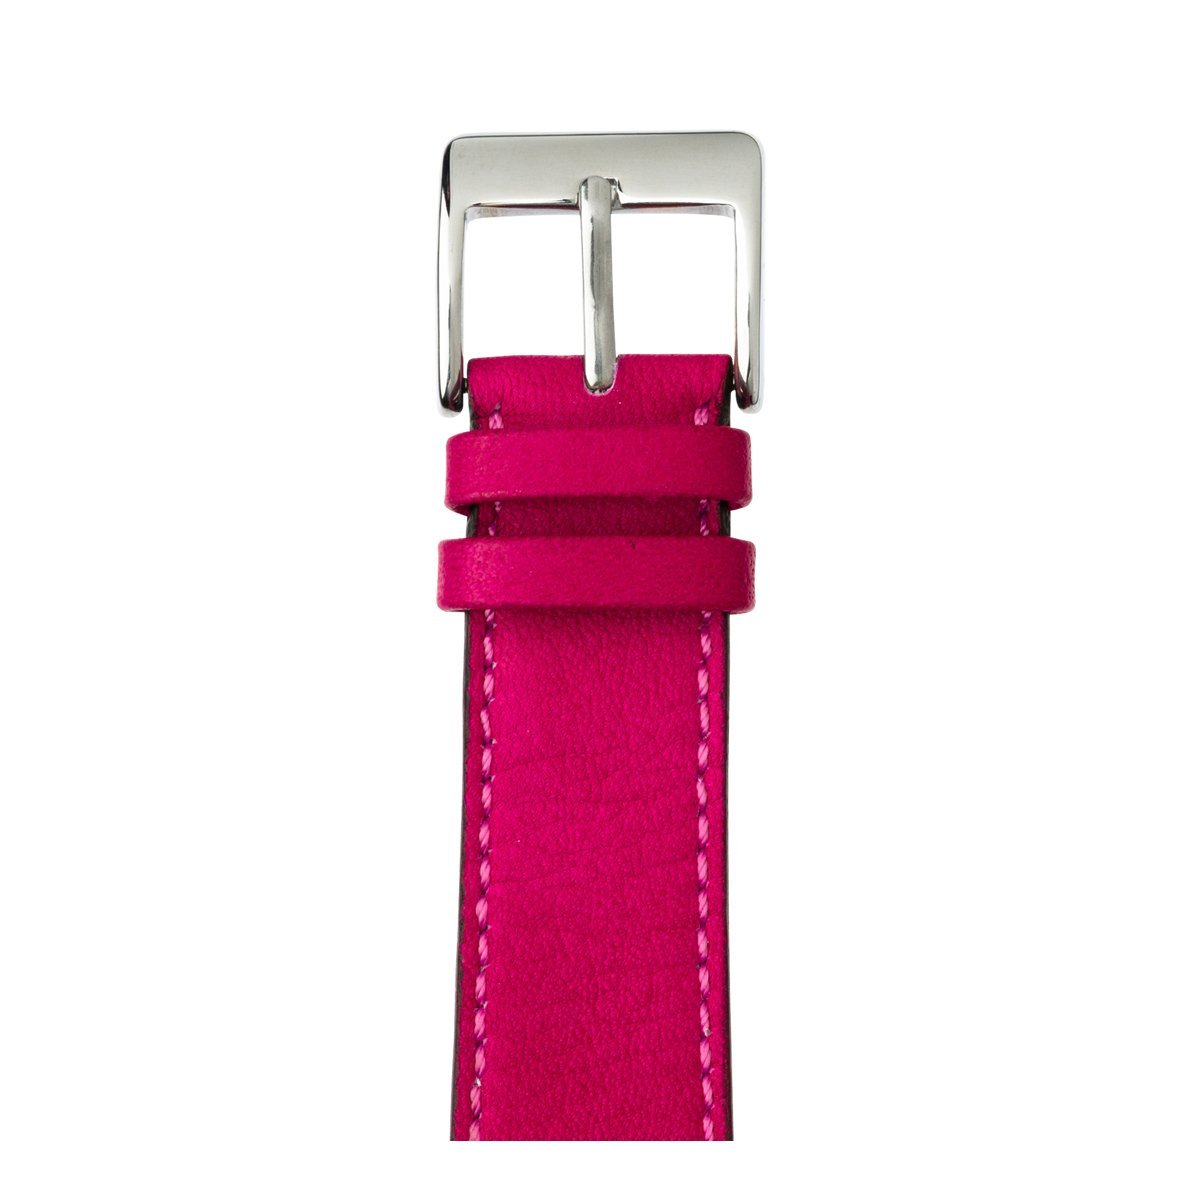 Roobaya | Premium Sauvage Leather Apple Watch Band in Pink | Includes Adapters matching the Color of the Apple Watch, Case Color:Stainless Steel, Size:38 mm